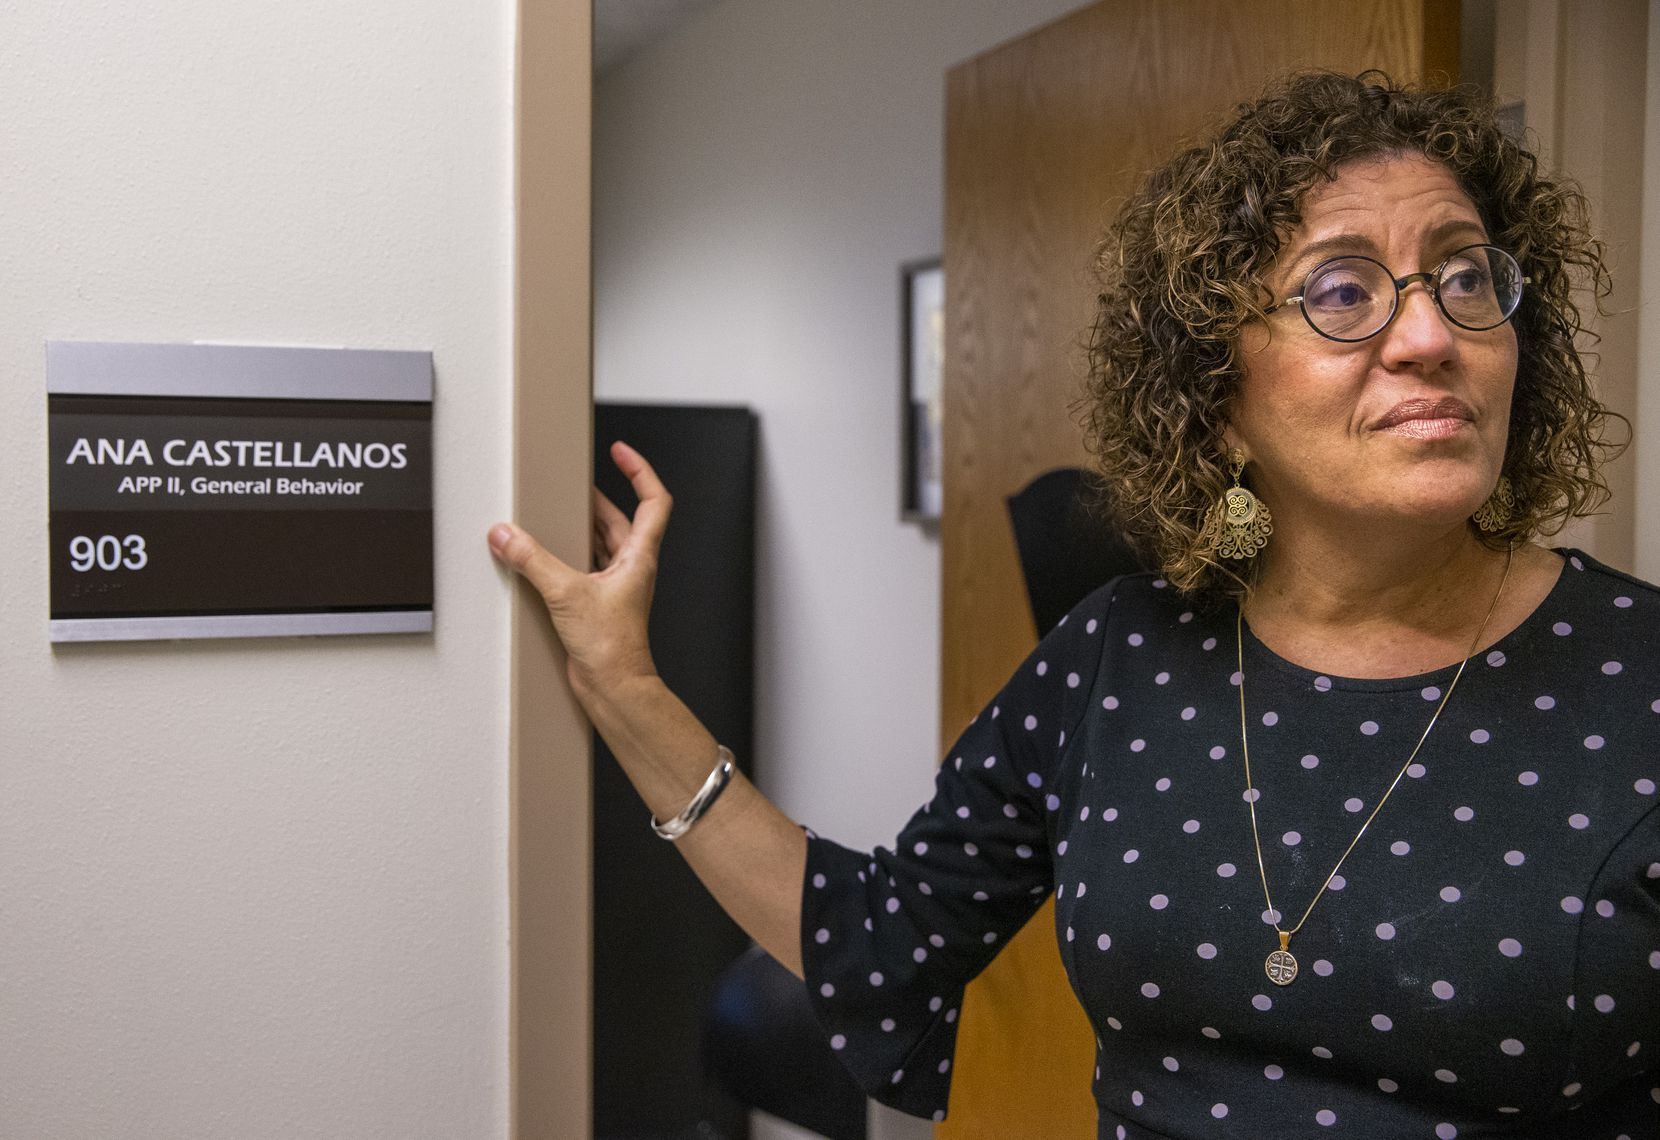 Ana Castellanos, a behavioral health provider, speaks to a visitor outside her office at the mental health hub of the deHaro-Saldivar Health Center in Dallas.